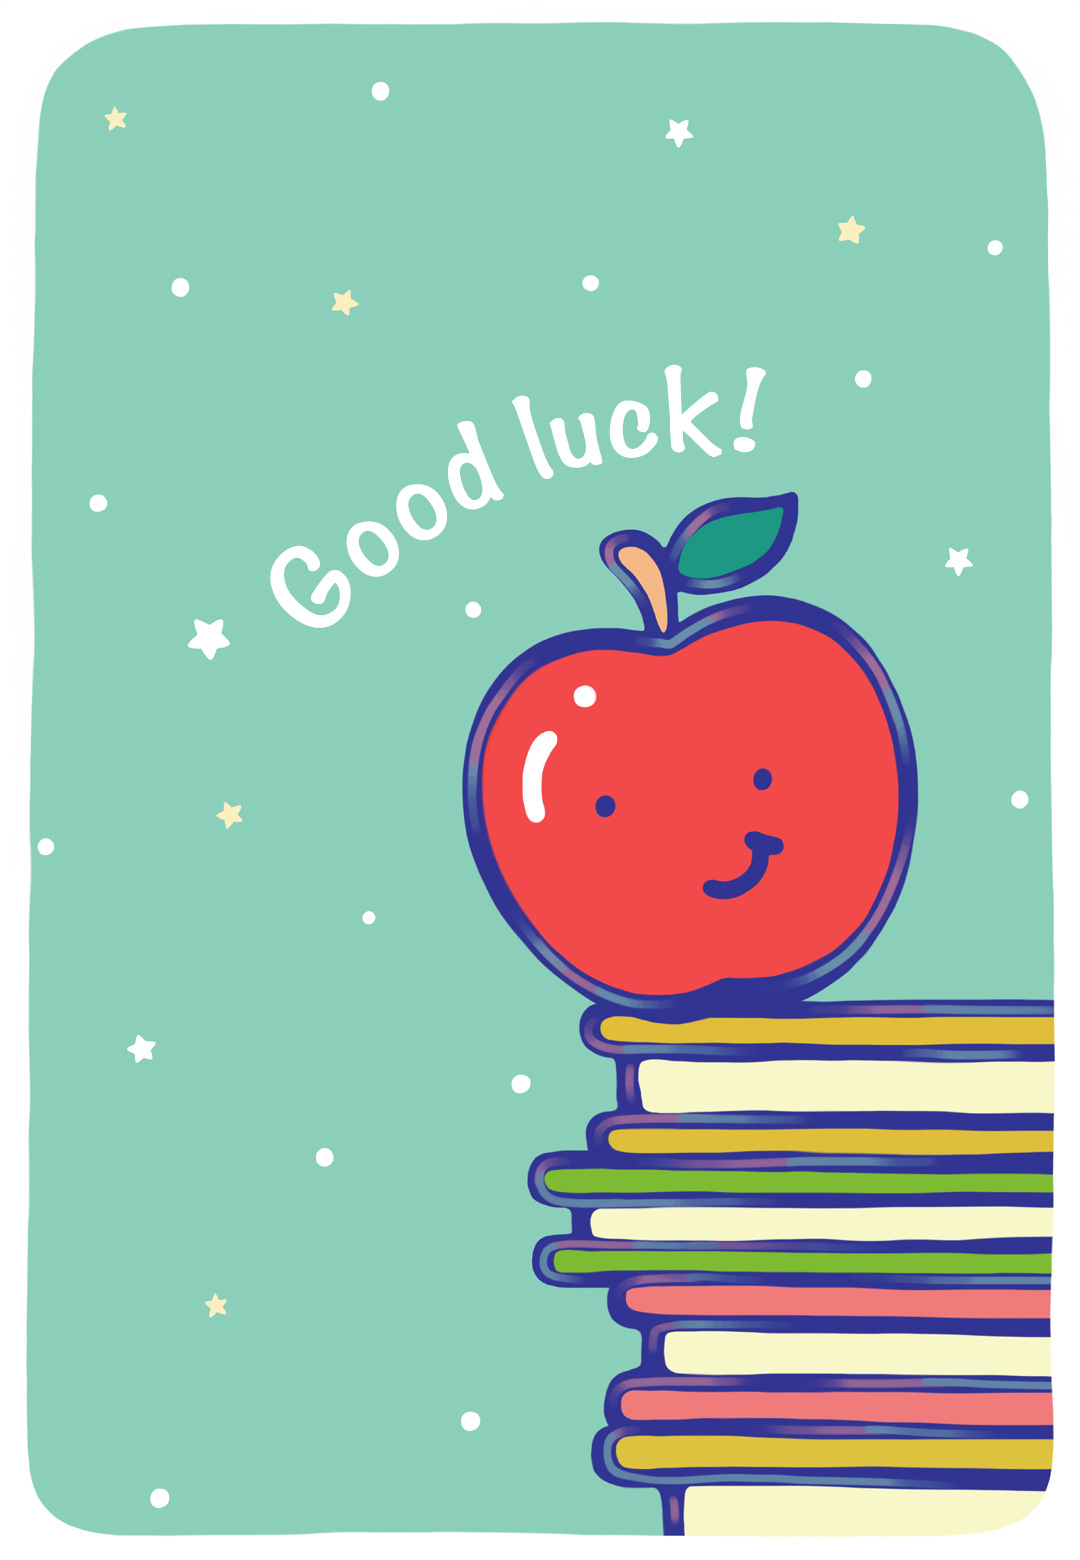 May Hard Work Pay Off - Free Good Luck Card   Greetings Island - Free Printable Good Luck Cards